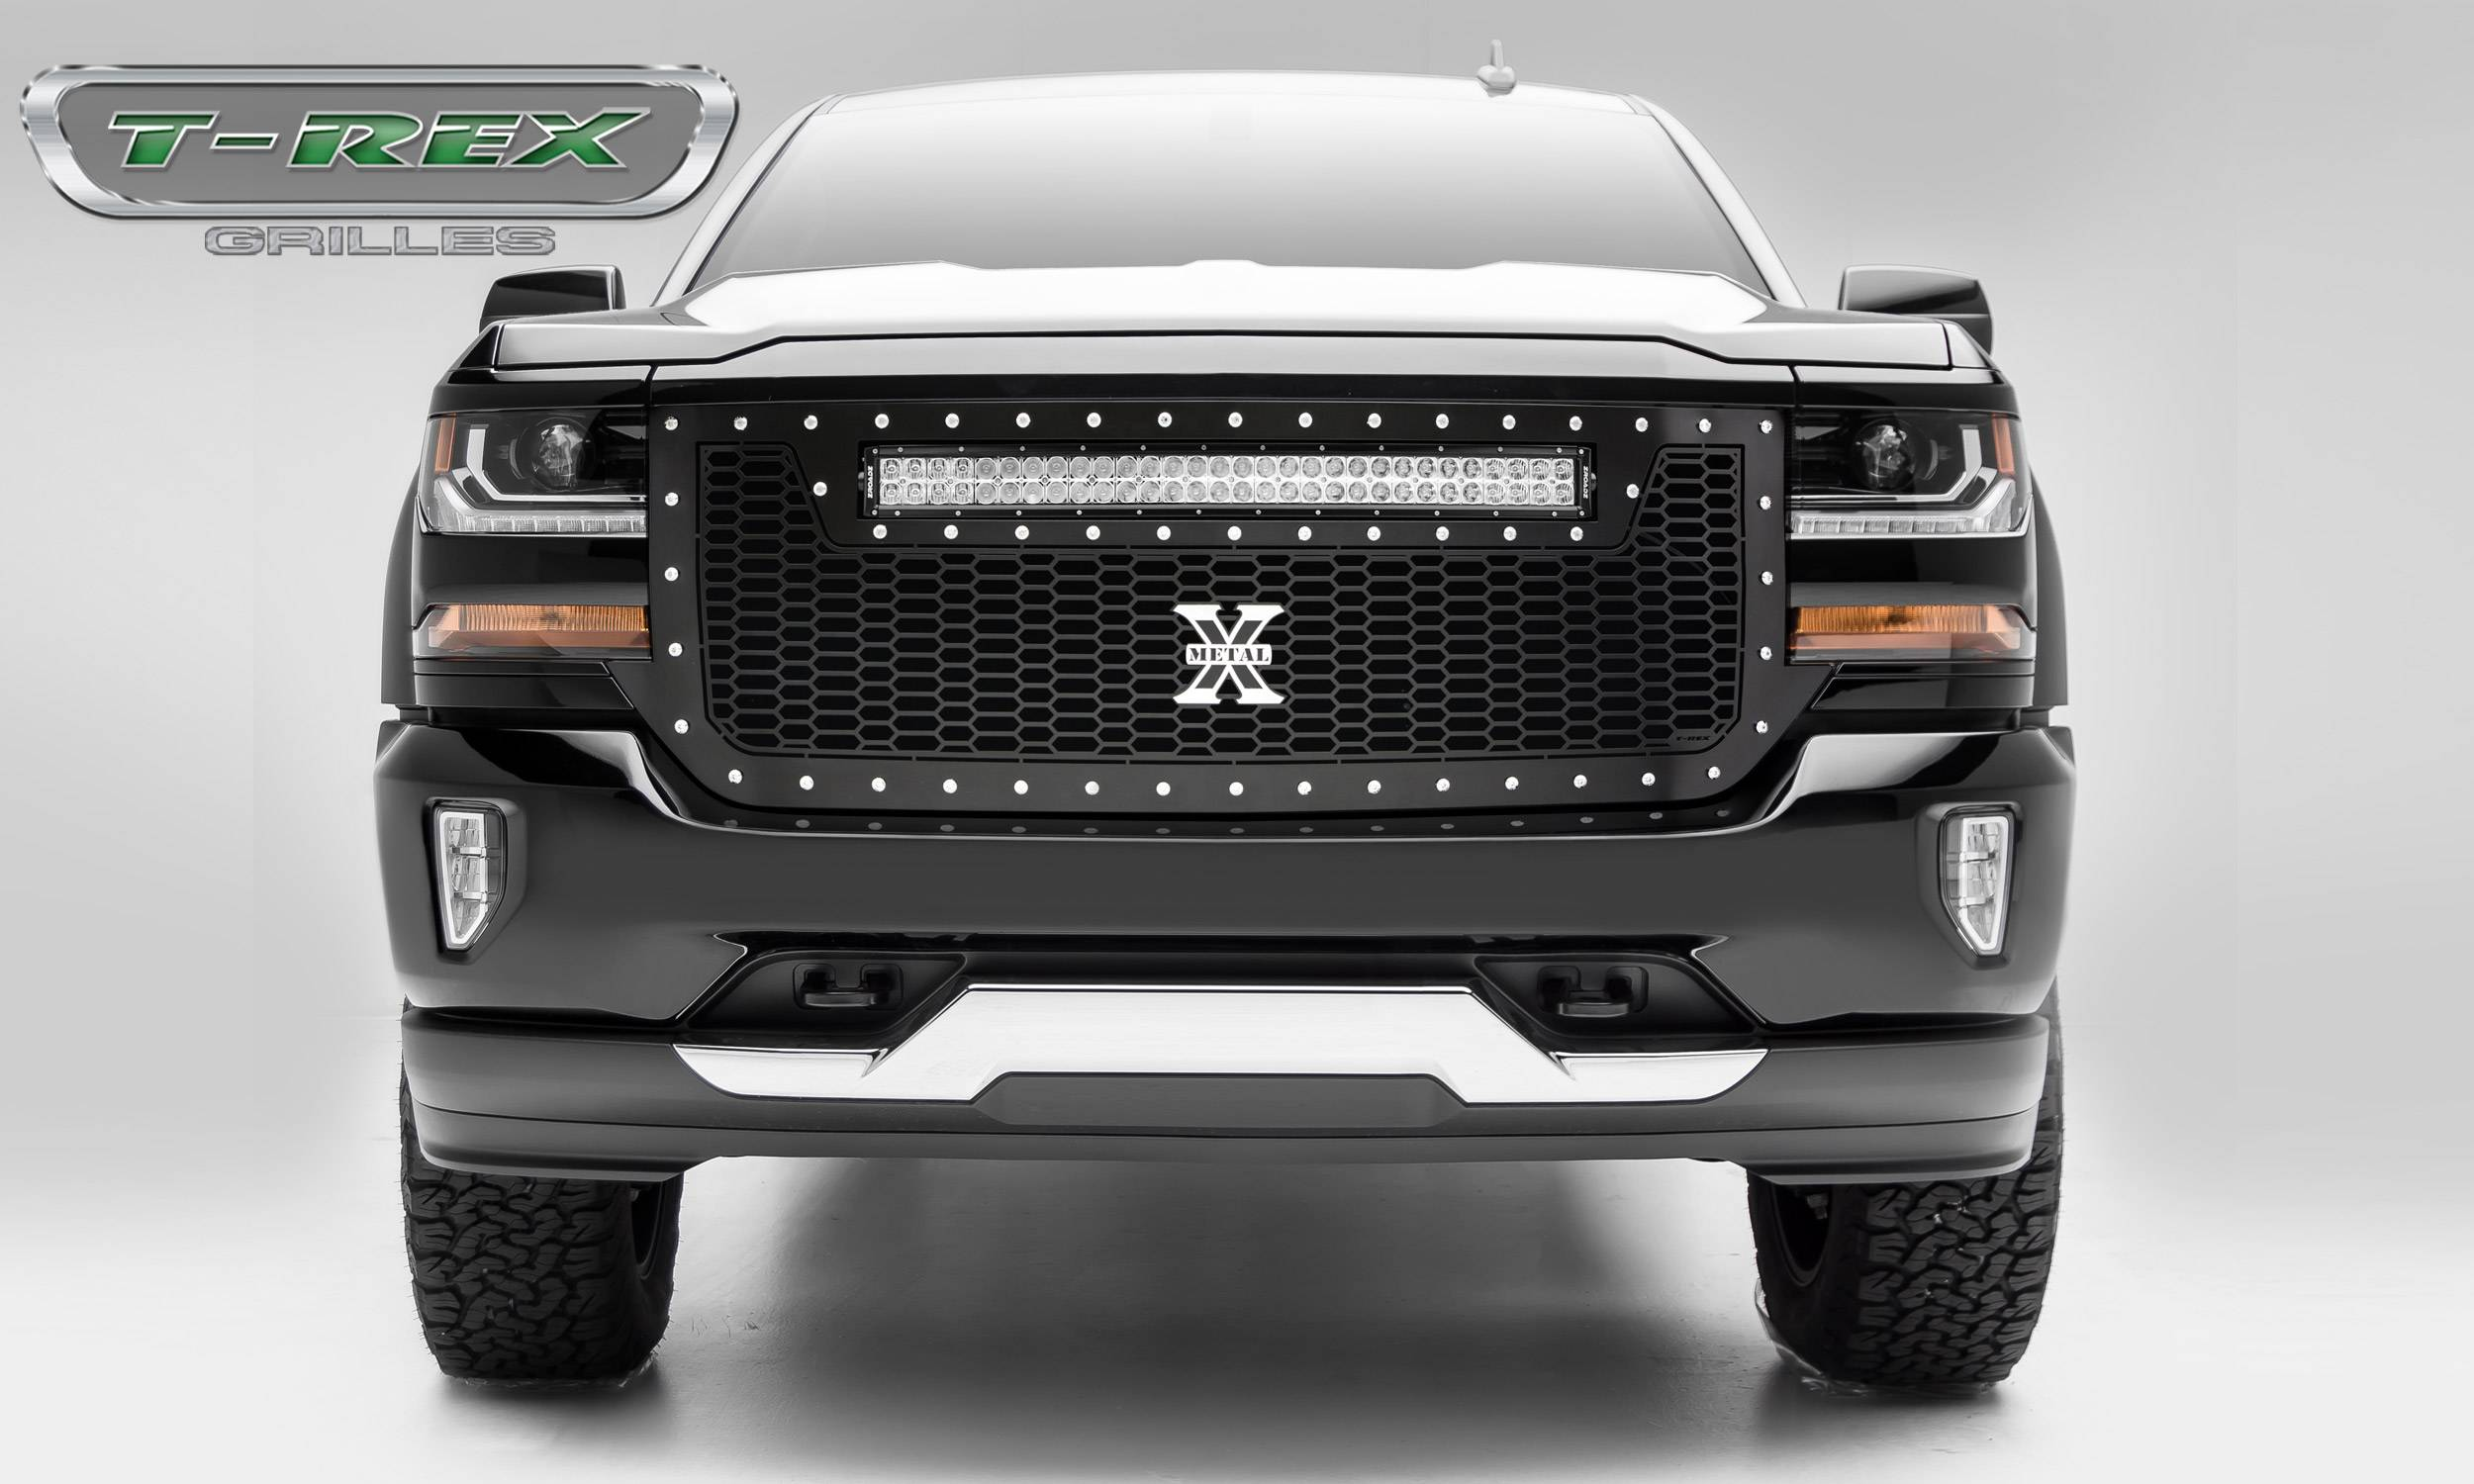 T-REX Grilles - 2016-2018 Chevrolet Silverado 1500 Laser Torch Grille, Black, Mild Steel, 1 Pc, Replacement -#7311281